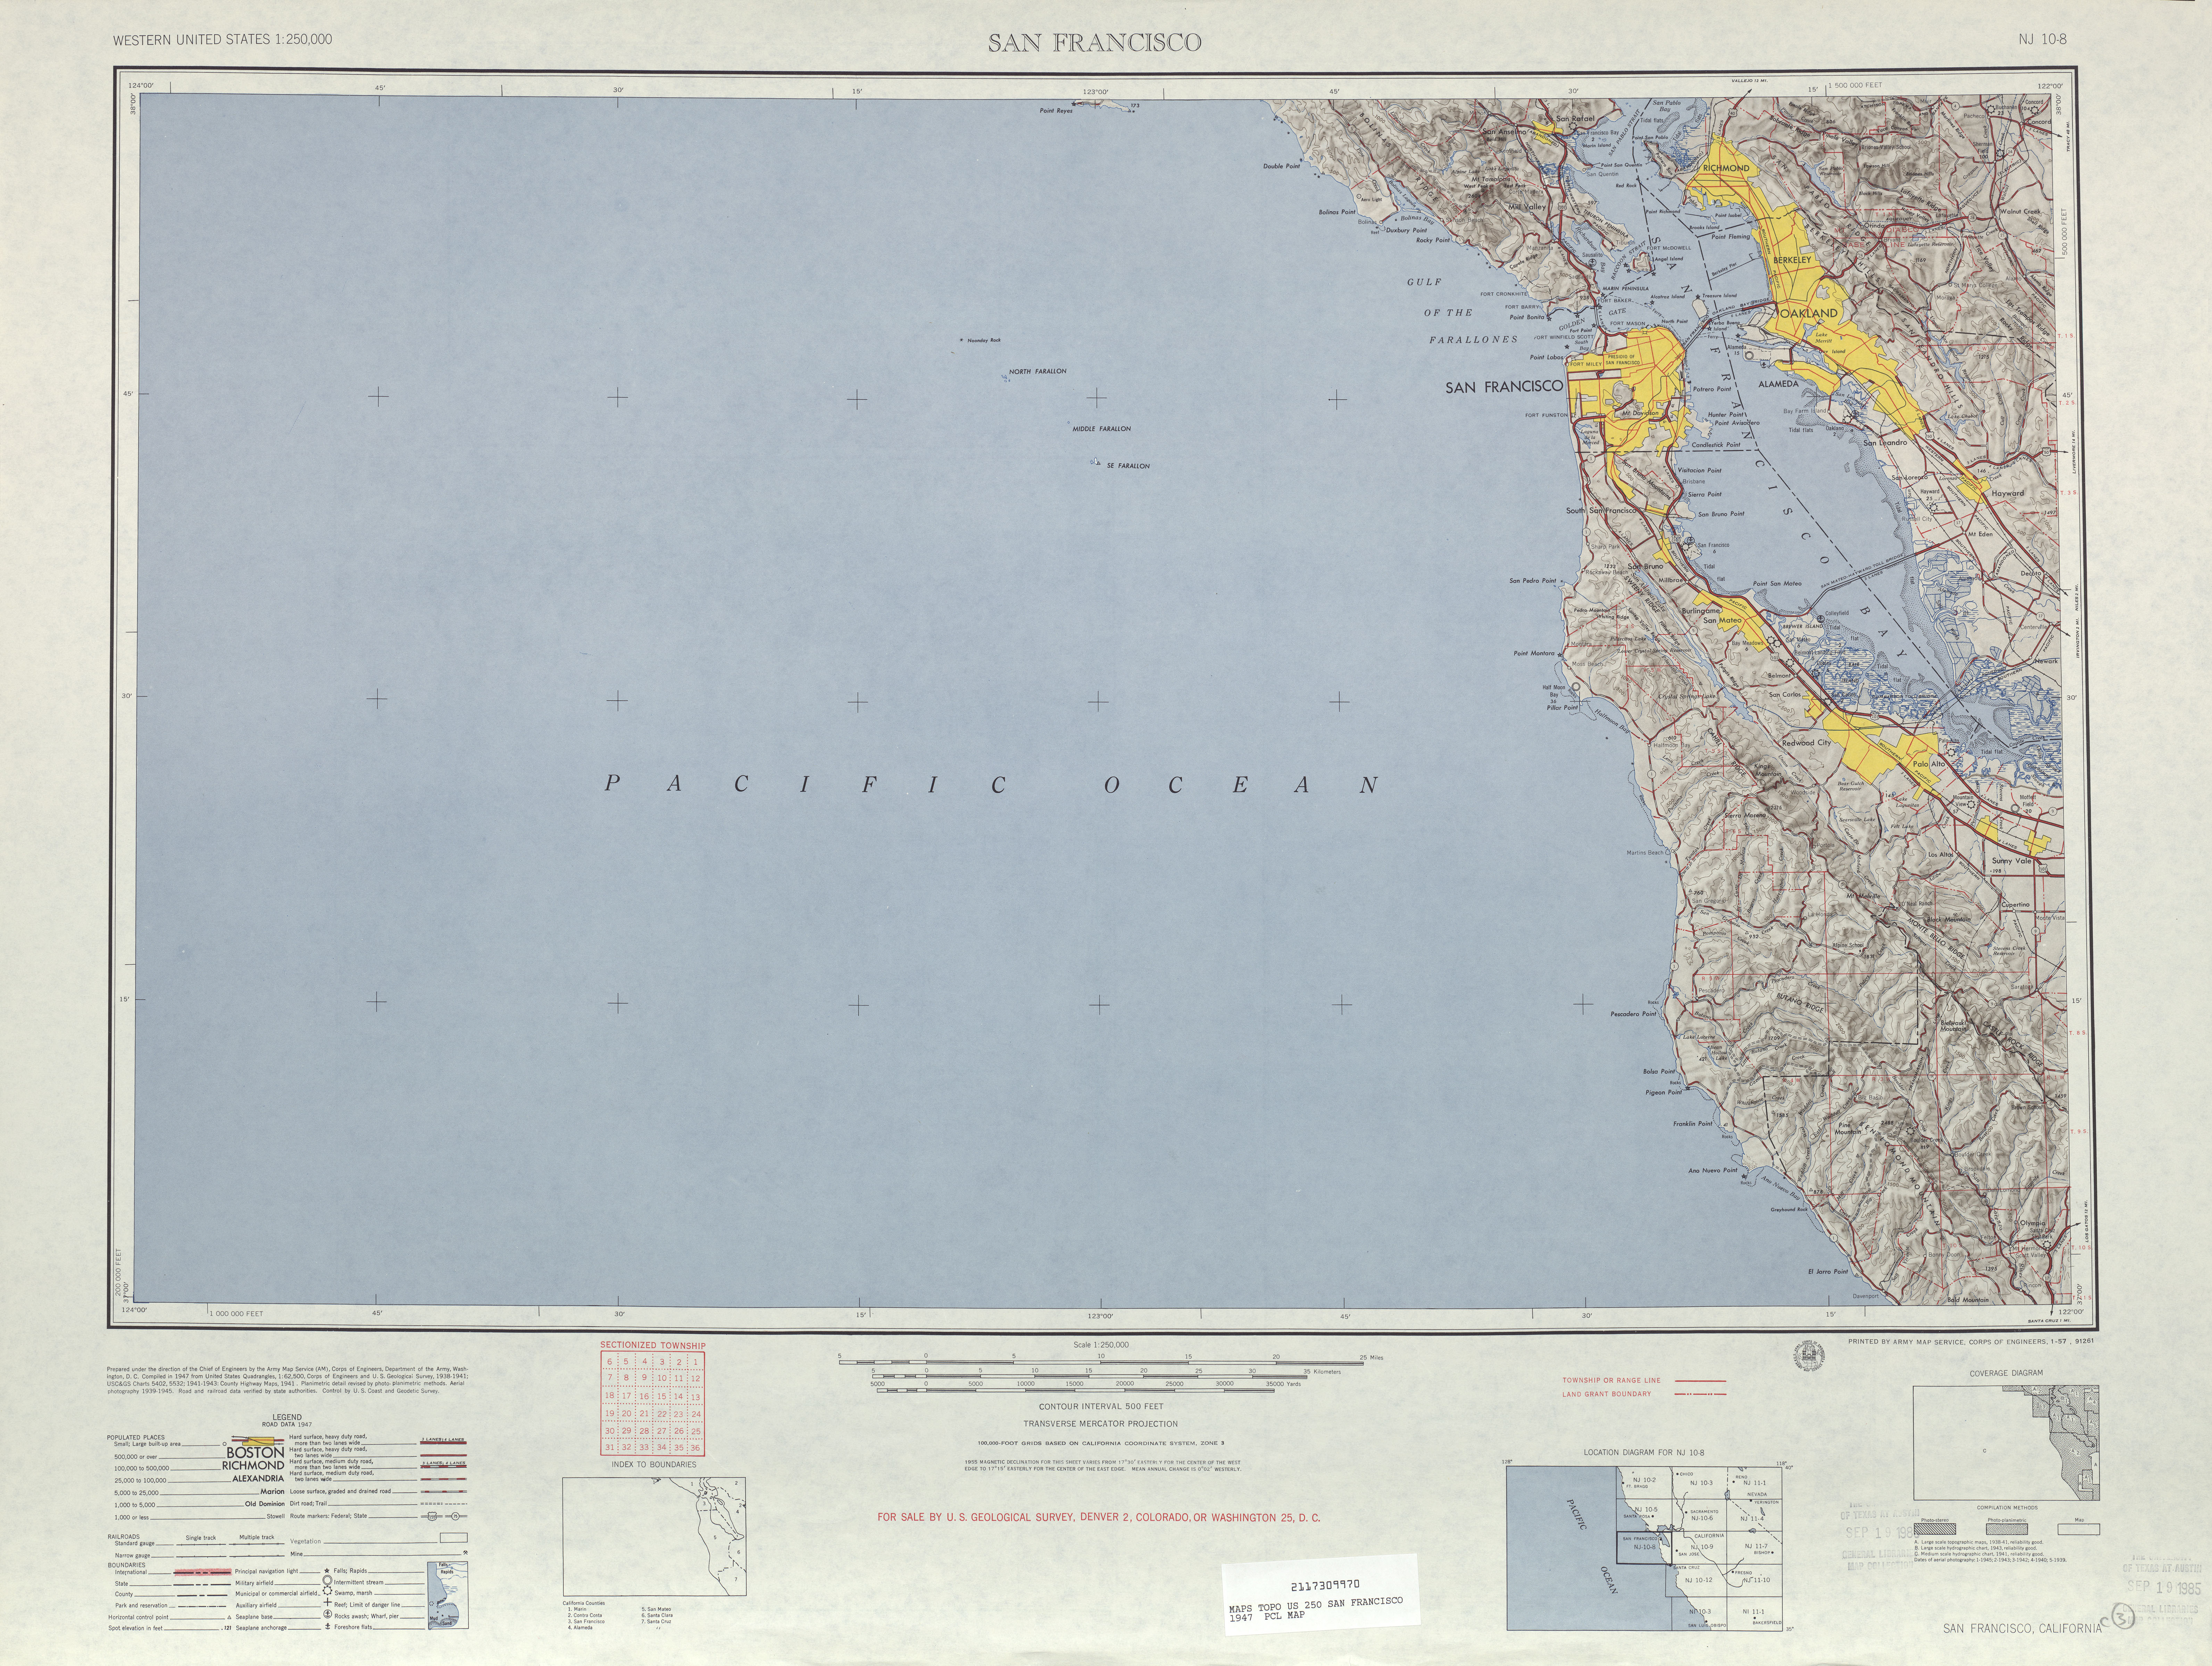 San Francisco Topographic Map Sheet, United States 1947